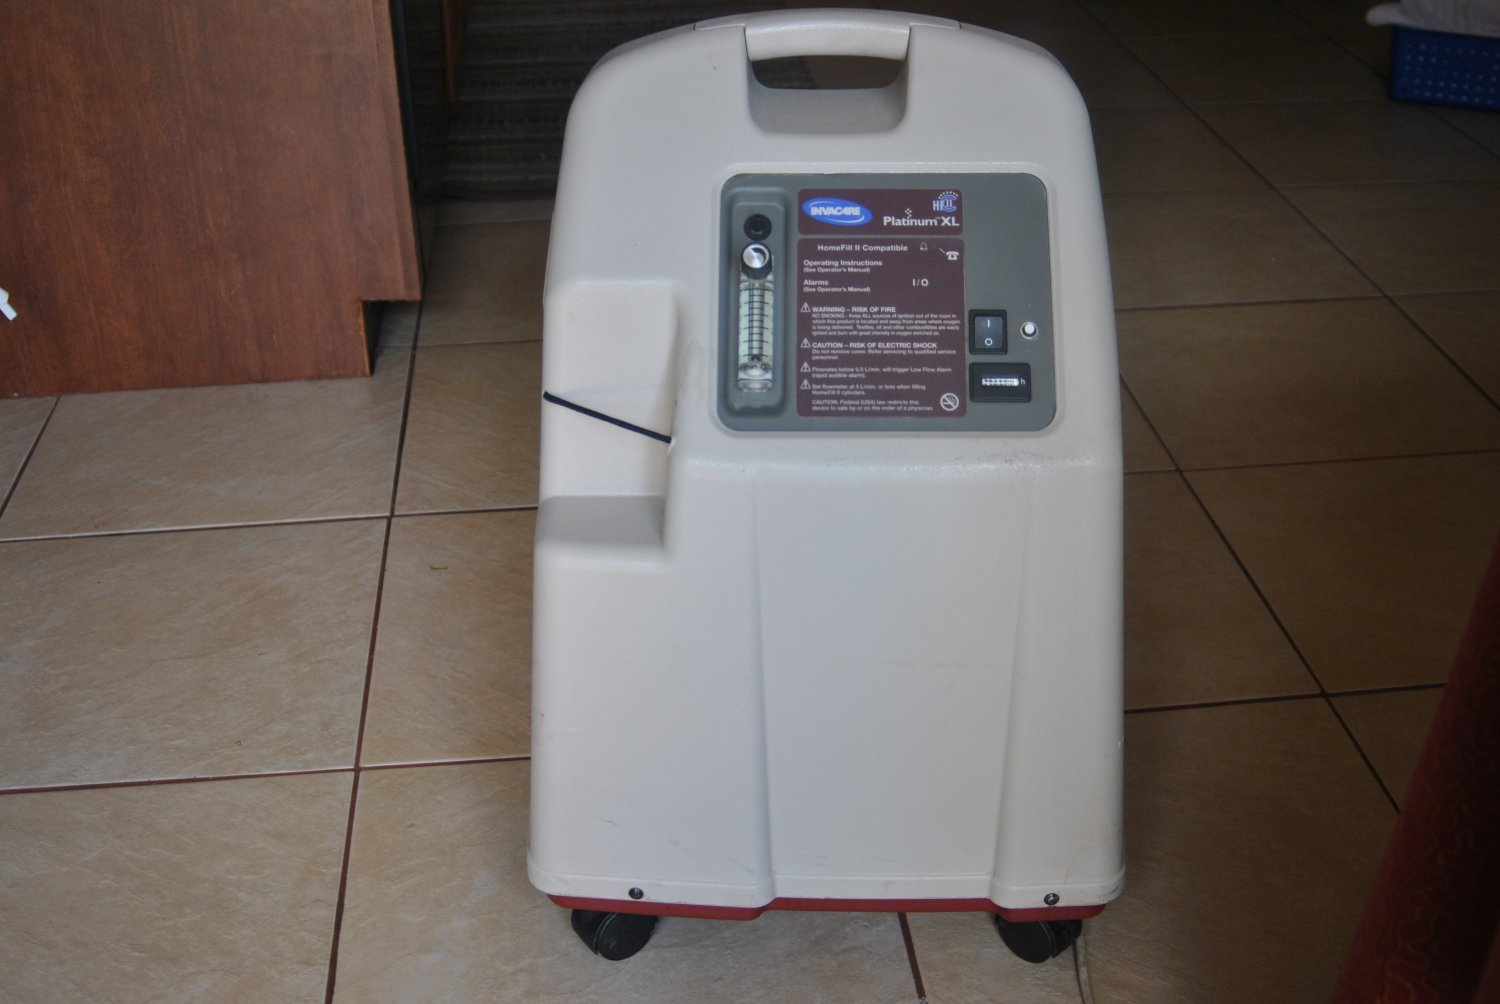 Nutra Luxe Md Hair Active Rejuvenaton Hair Stimulator 1 35 Ounce Box together with Invacare Platinum 5lpm Replacement Circuit Board 191 furthermore Our Products as well Invacare Platinum 9 Oxygen Concentrator as well Invacare Oxygen Concentrator Accessories And Parts. on platinum 9 oxygen concentrator